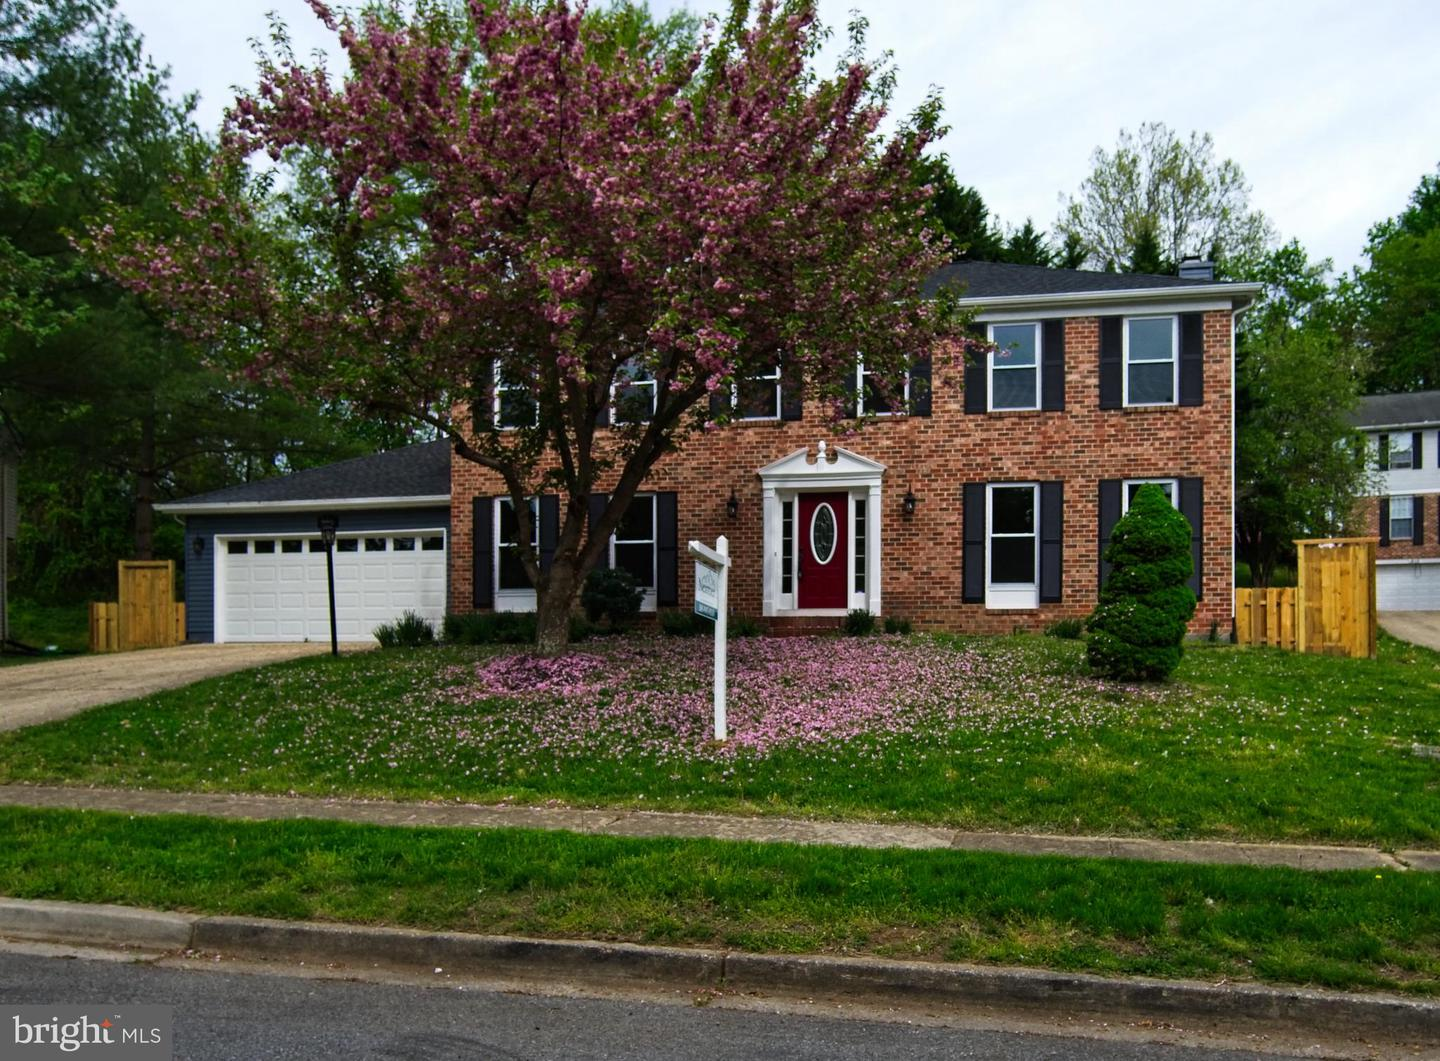 915 CYPRESS POINT CIRCLE, BOWIE, Maryland